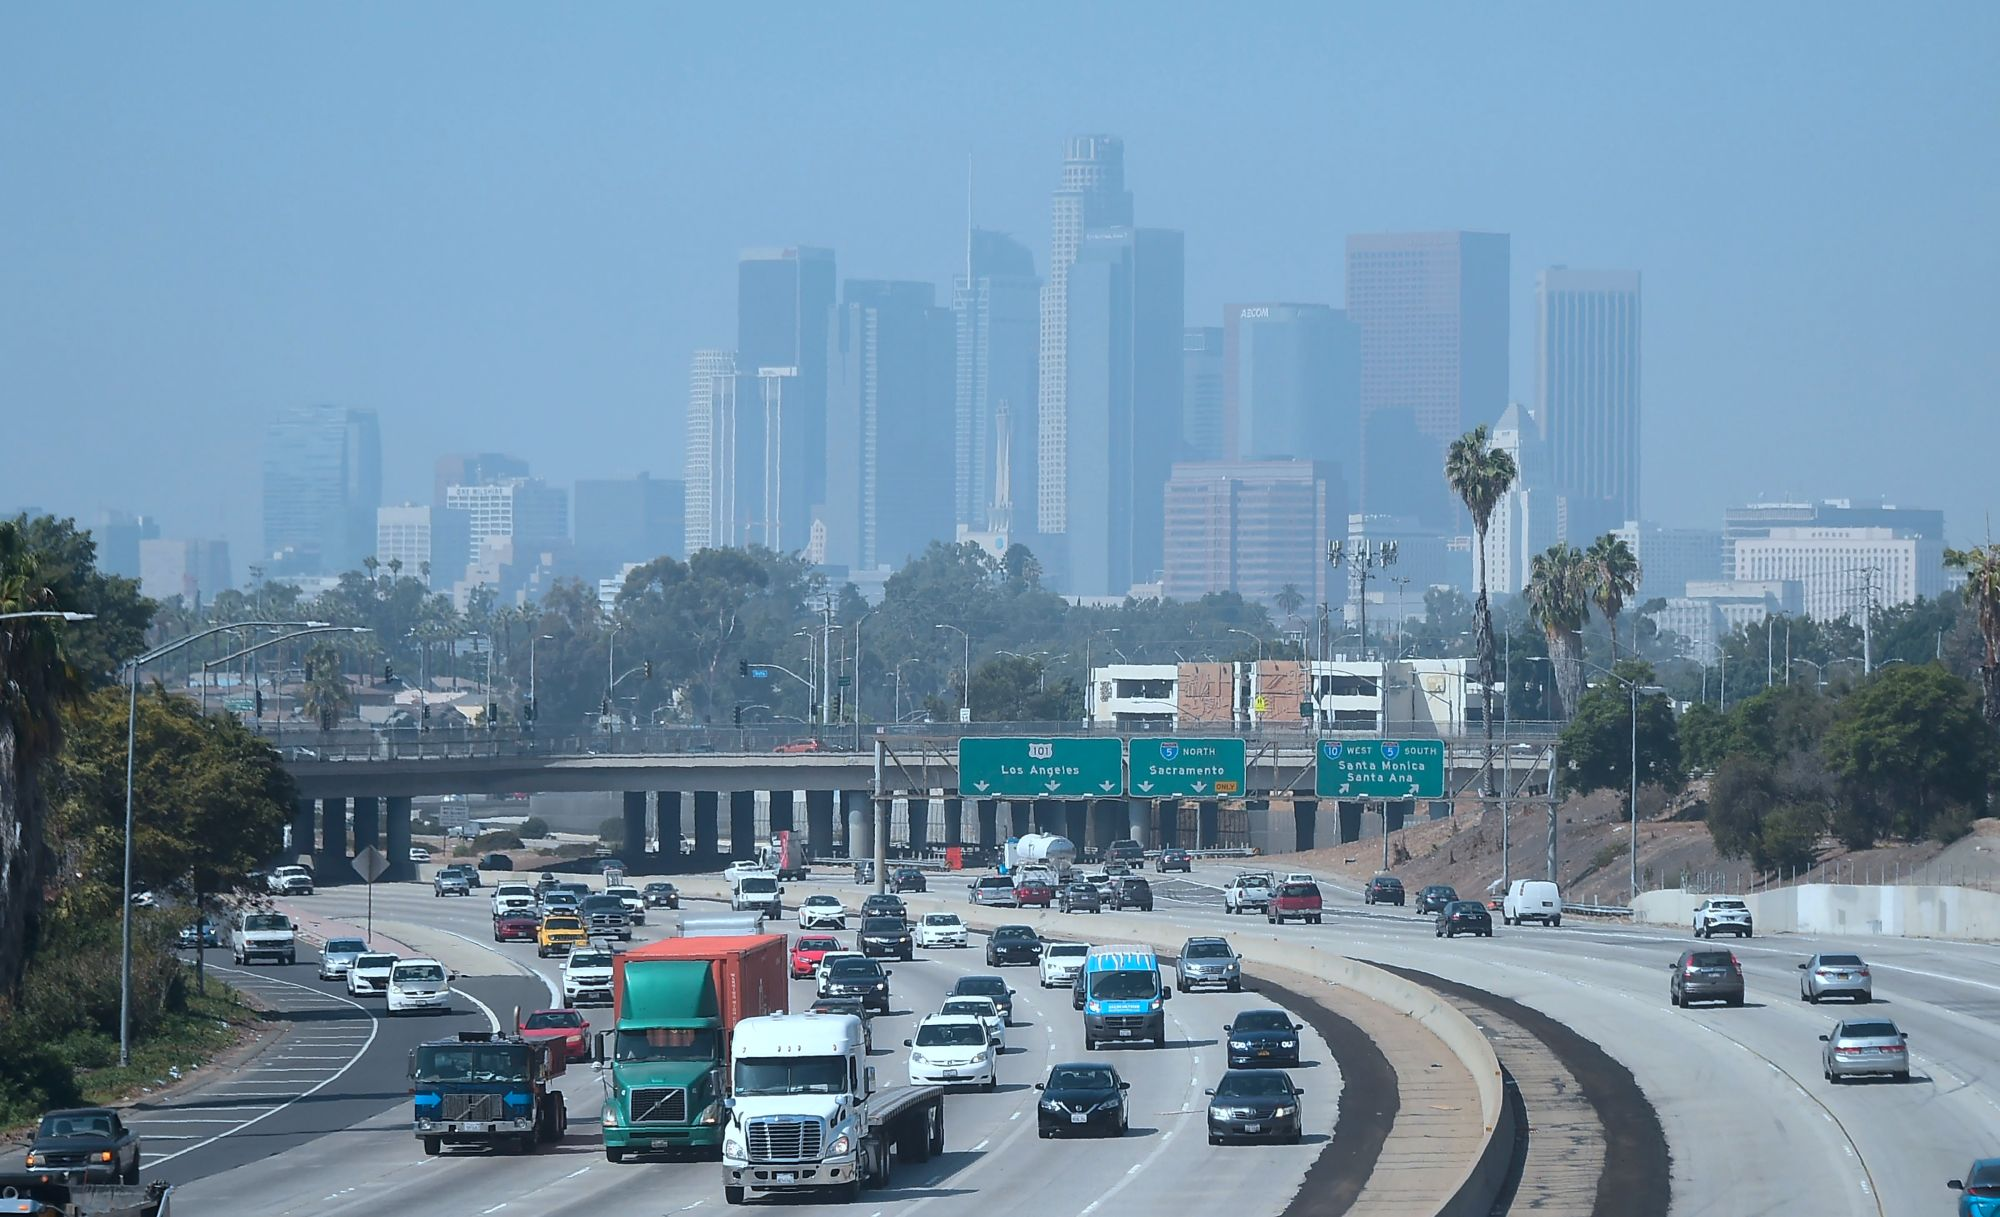 Highrise buildings in downtown Los Angeles are seen on on a hazy morning on Sept. 21, 2018. (Credit: FREDERIC J. BROWN/AFP/Getty Images)